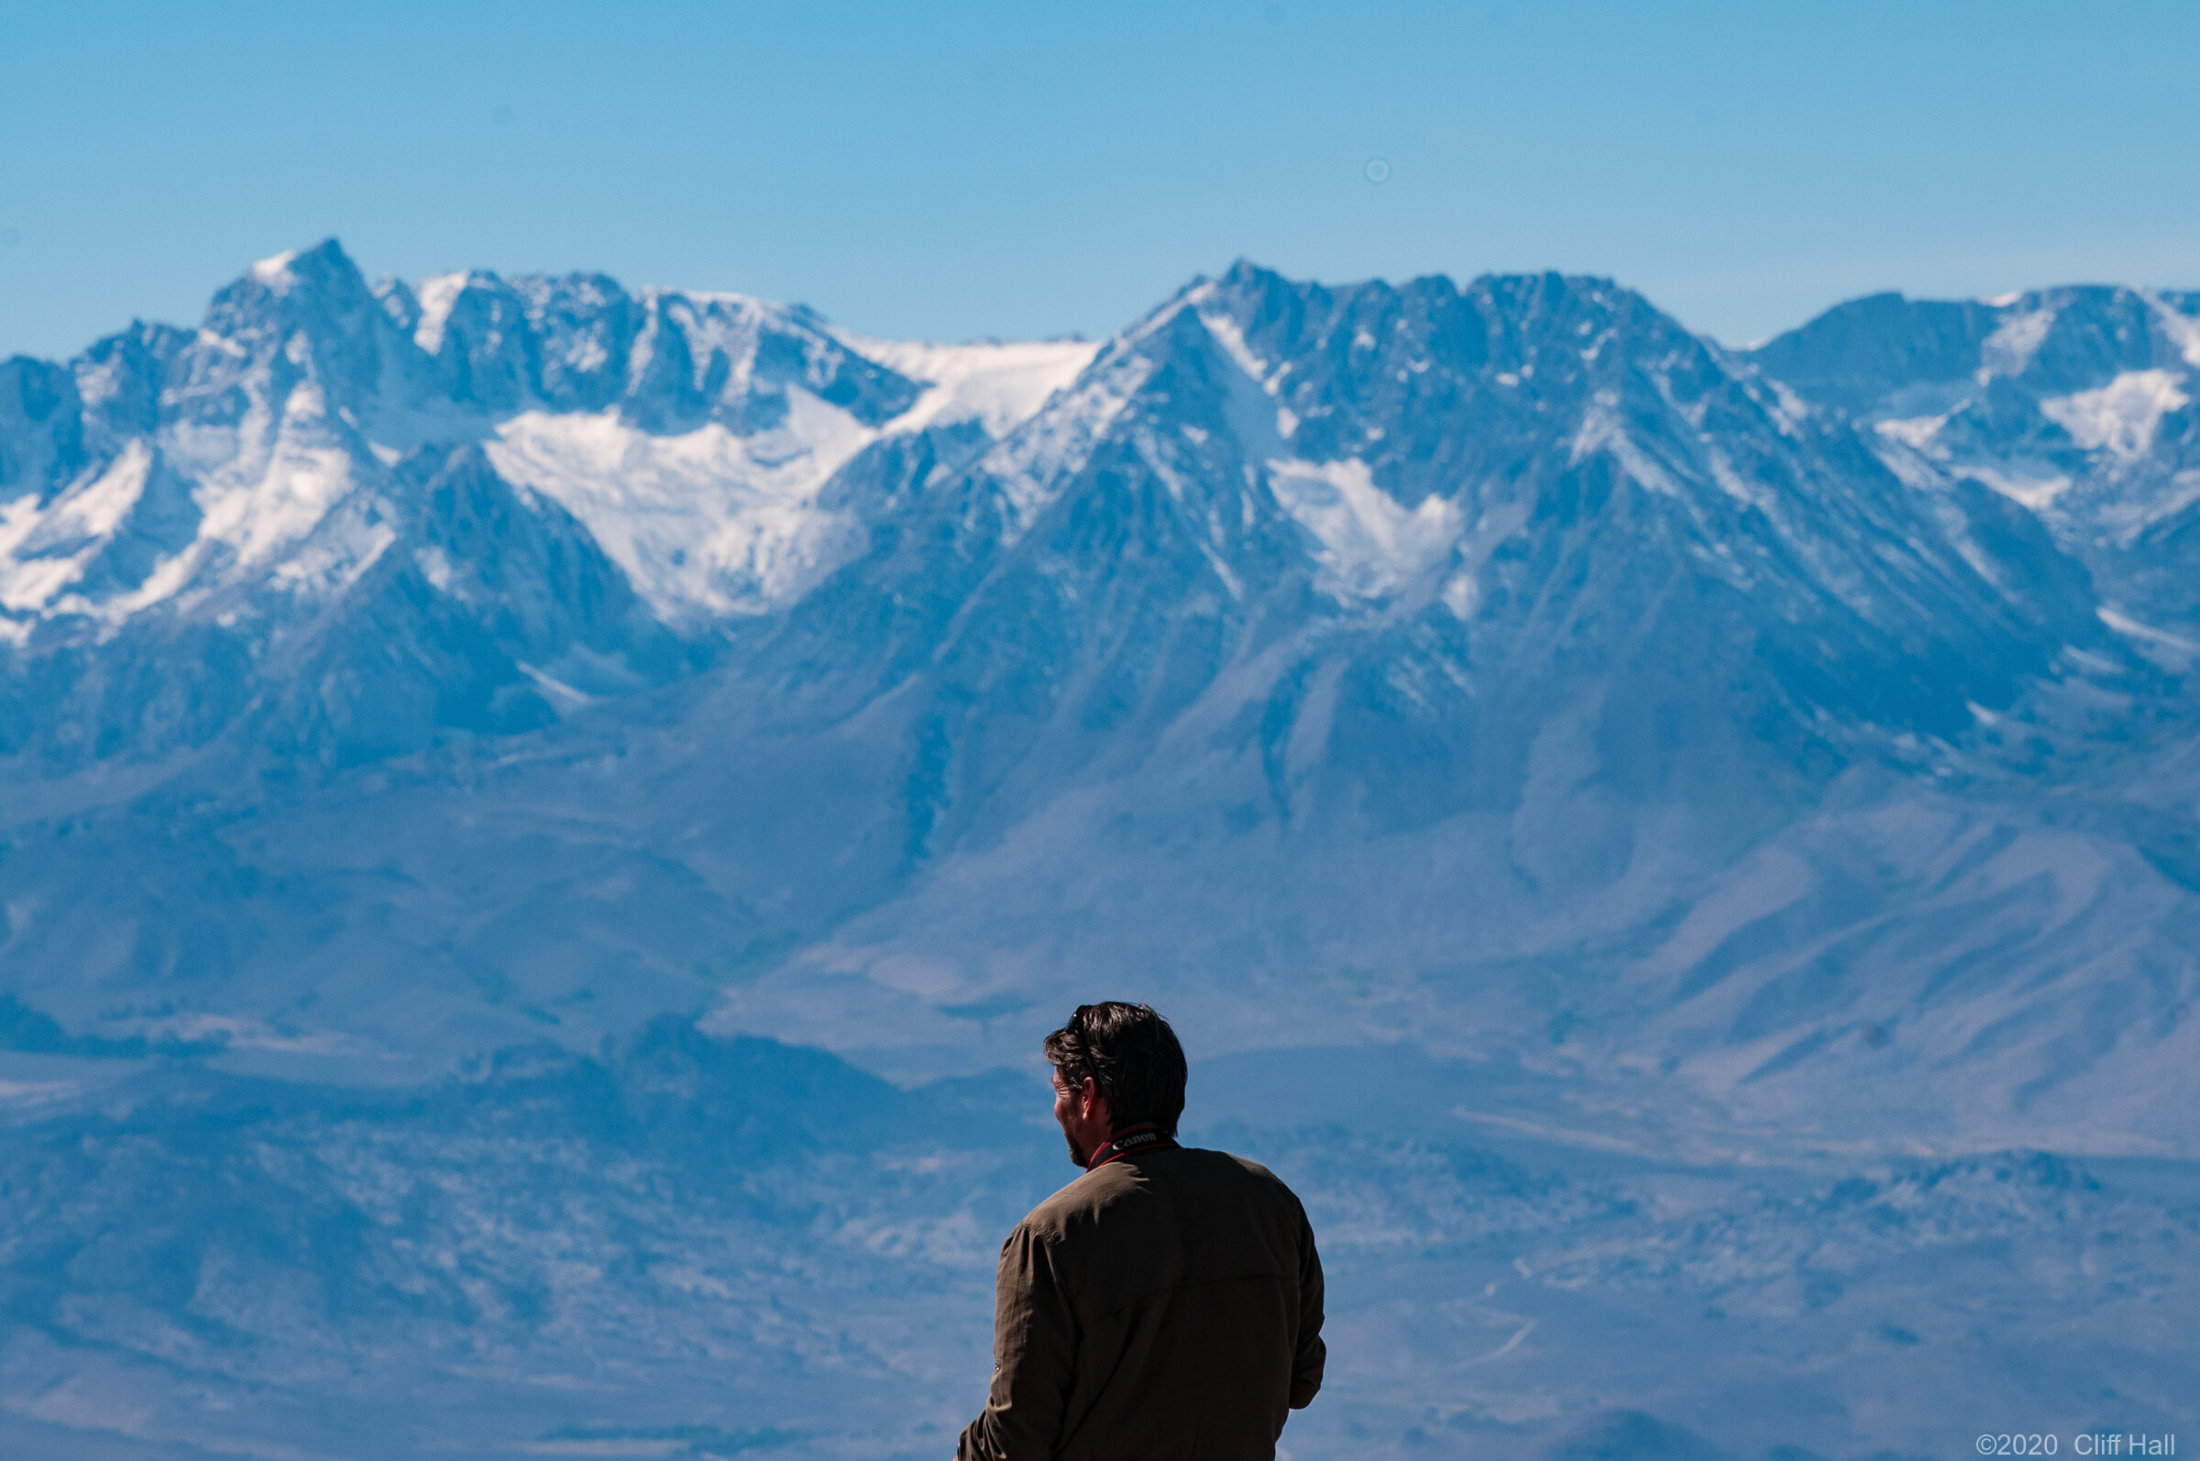 A man and his mountains